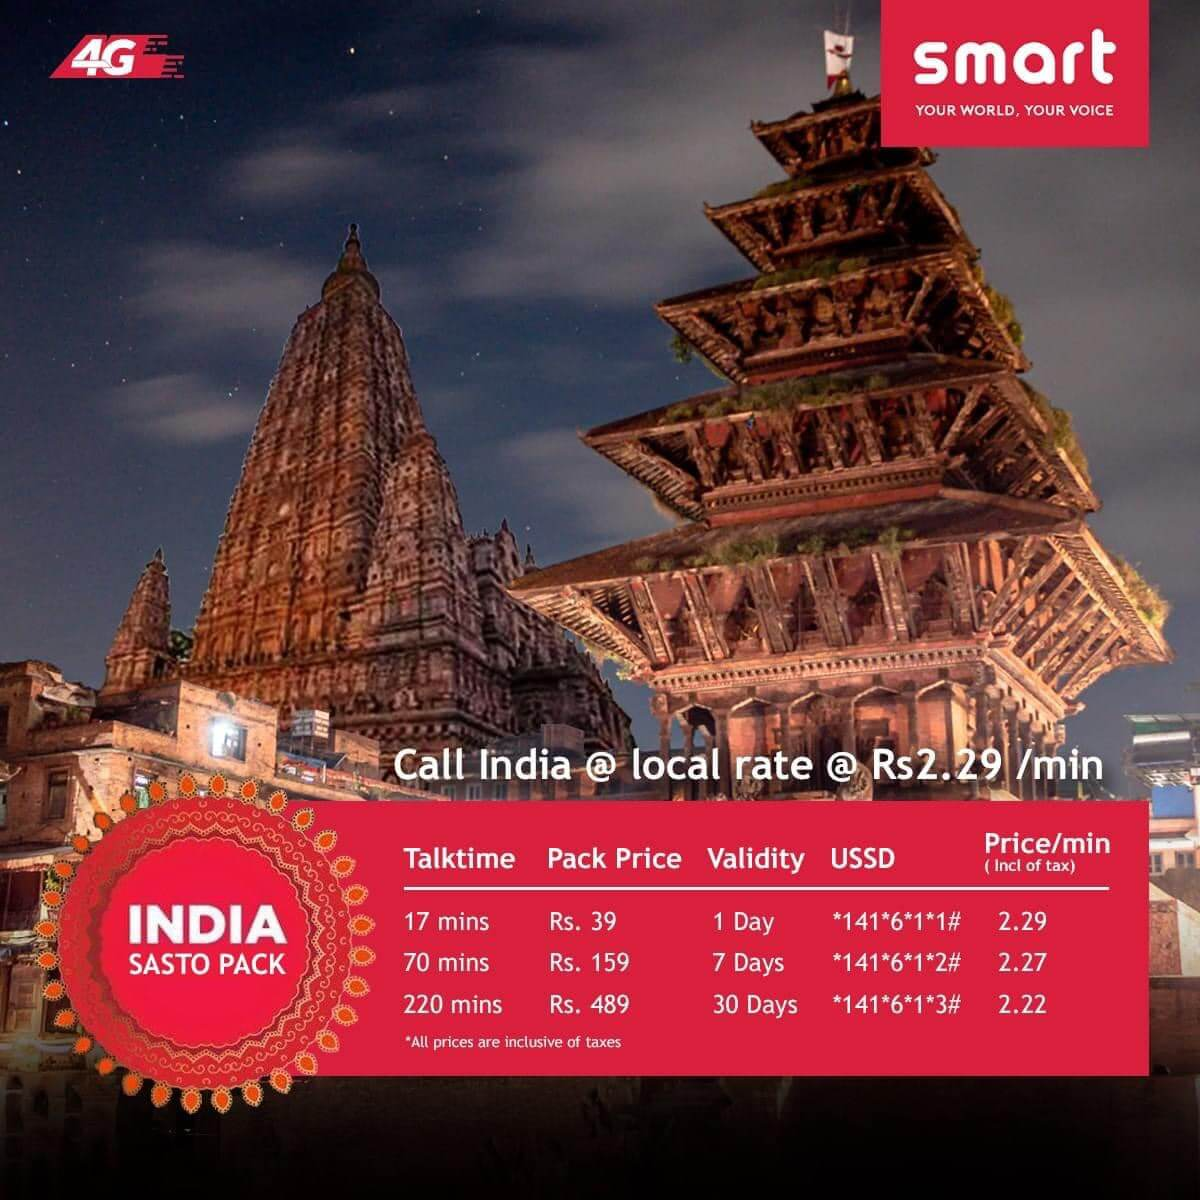 smart cell call india packs services